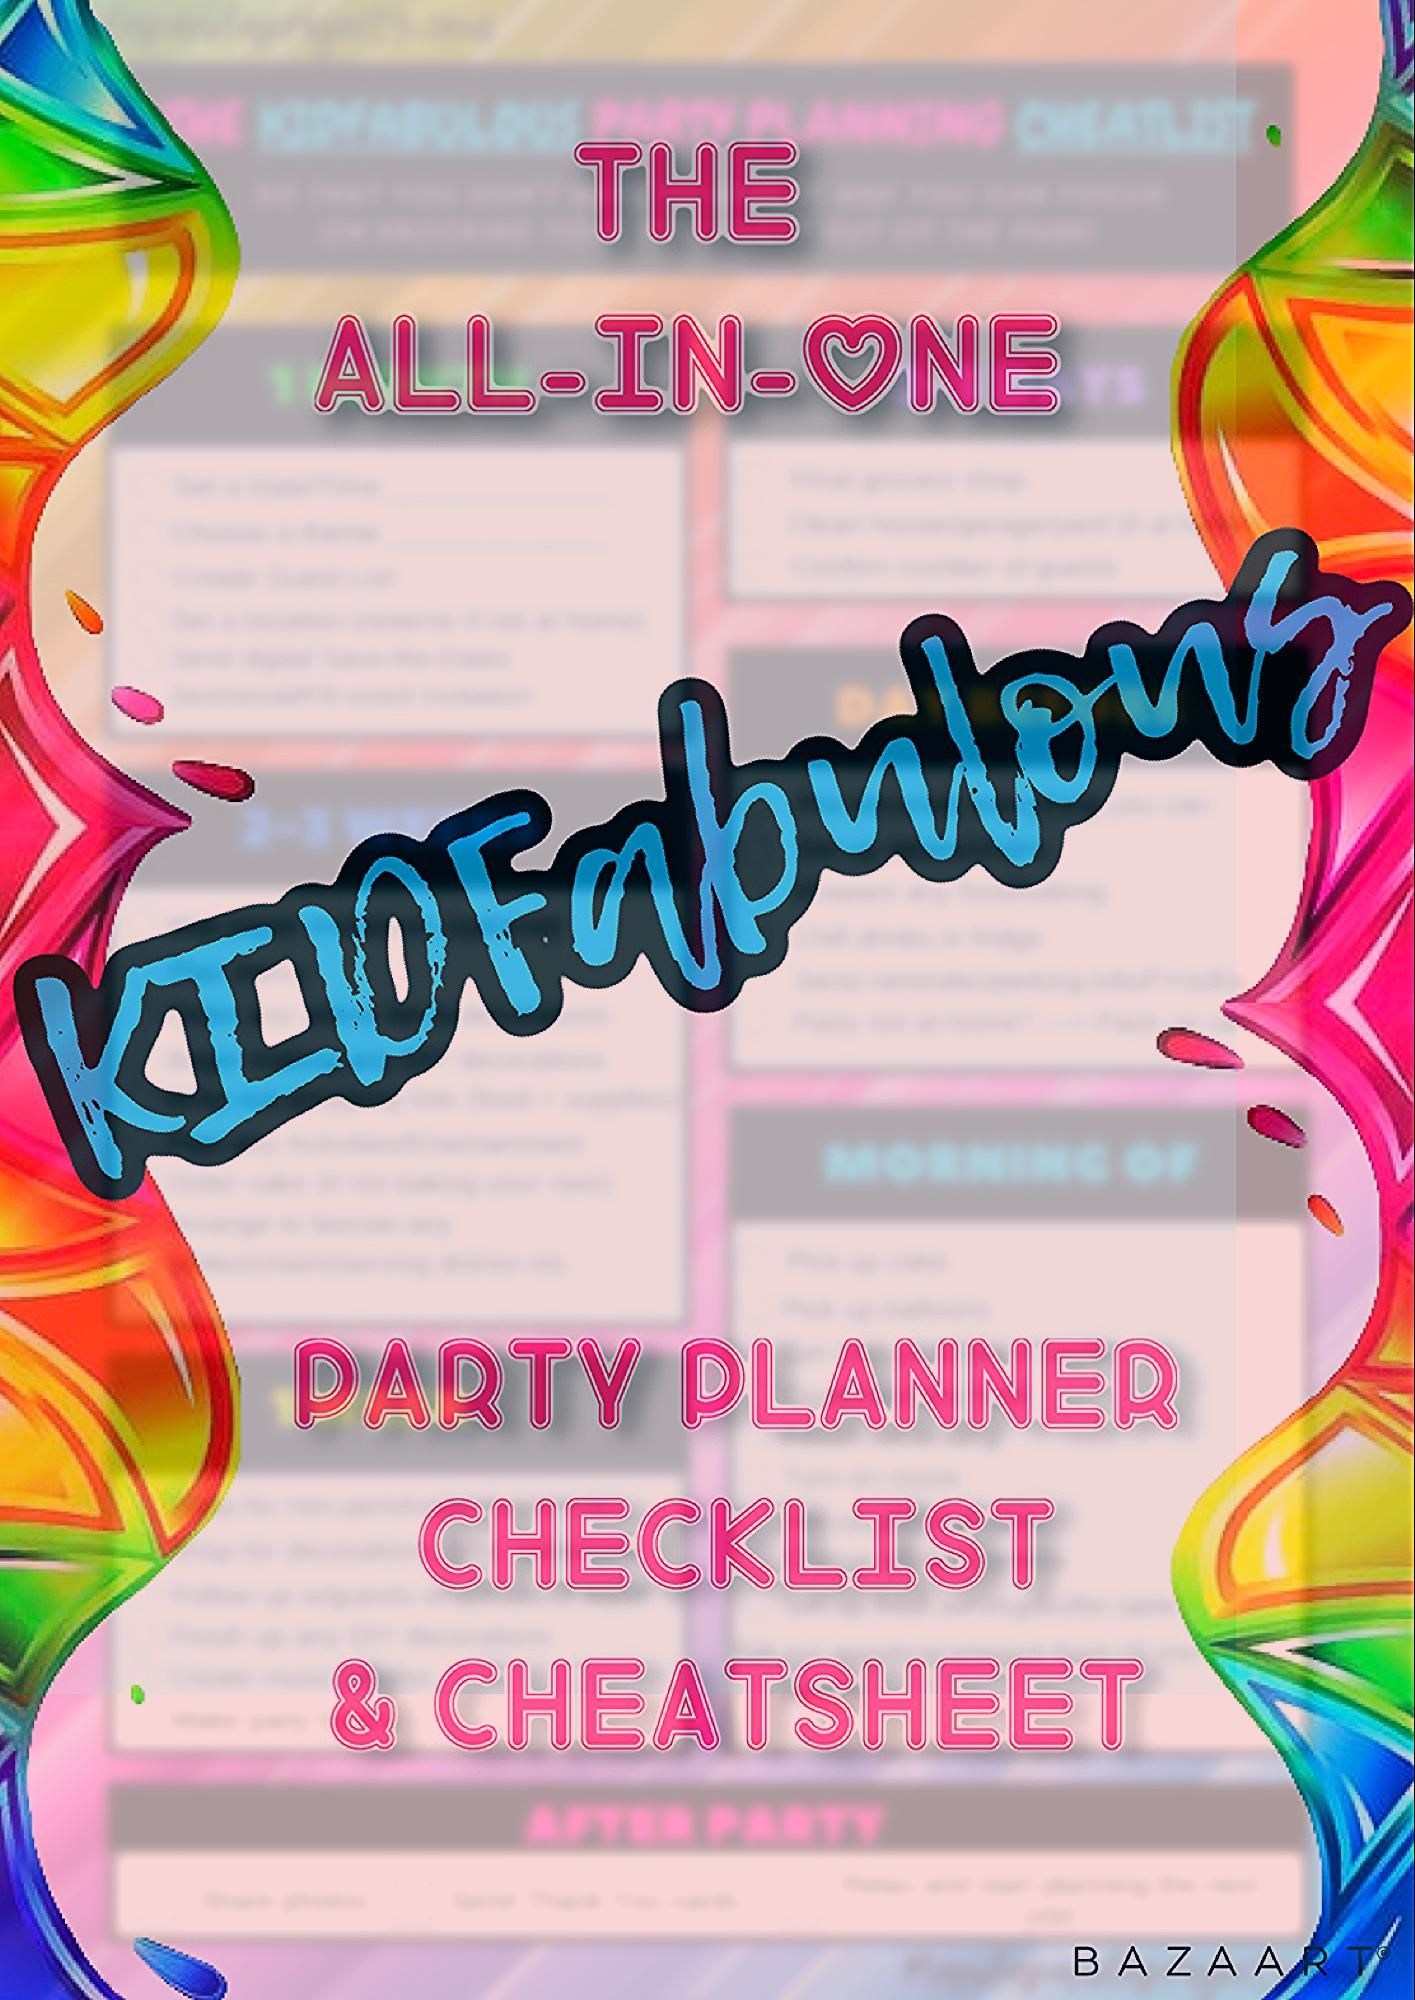 Photo of Party Planning Checklist and Cheatsheet